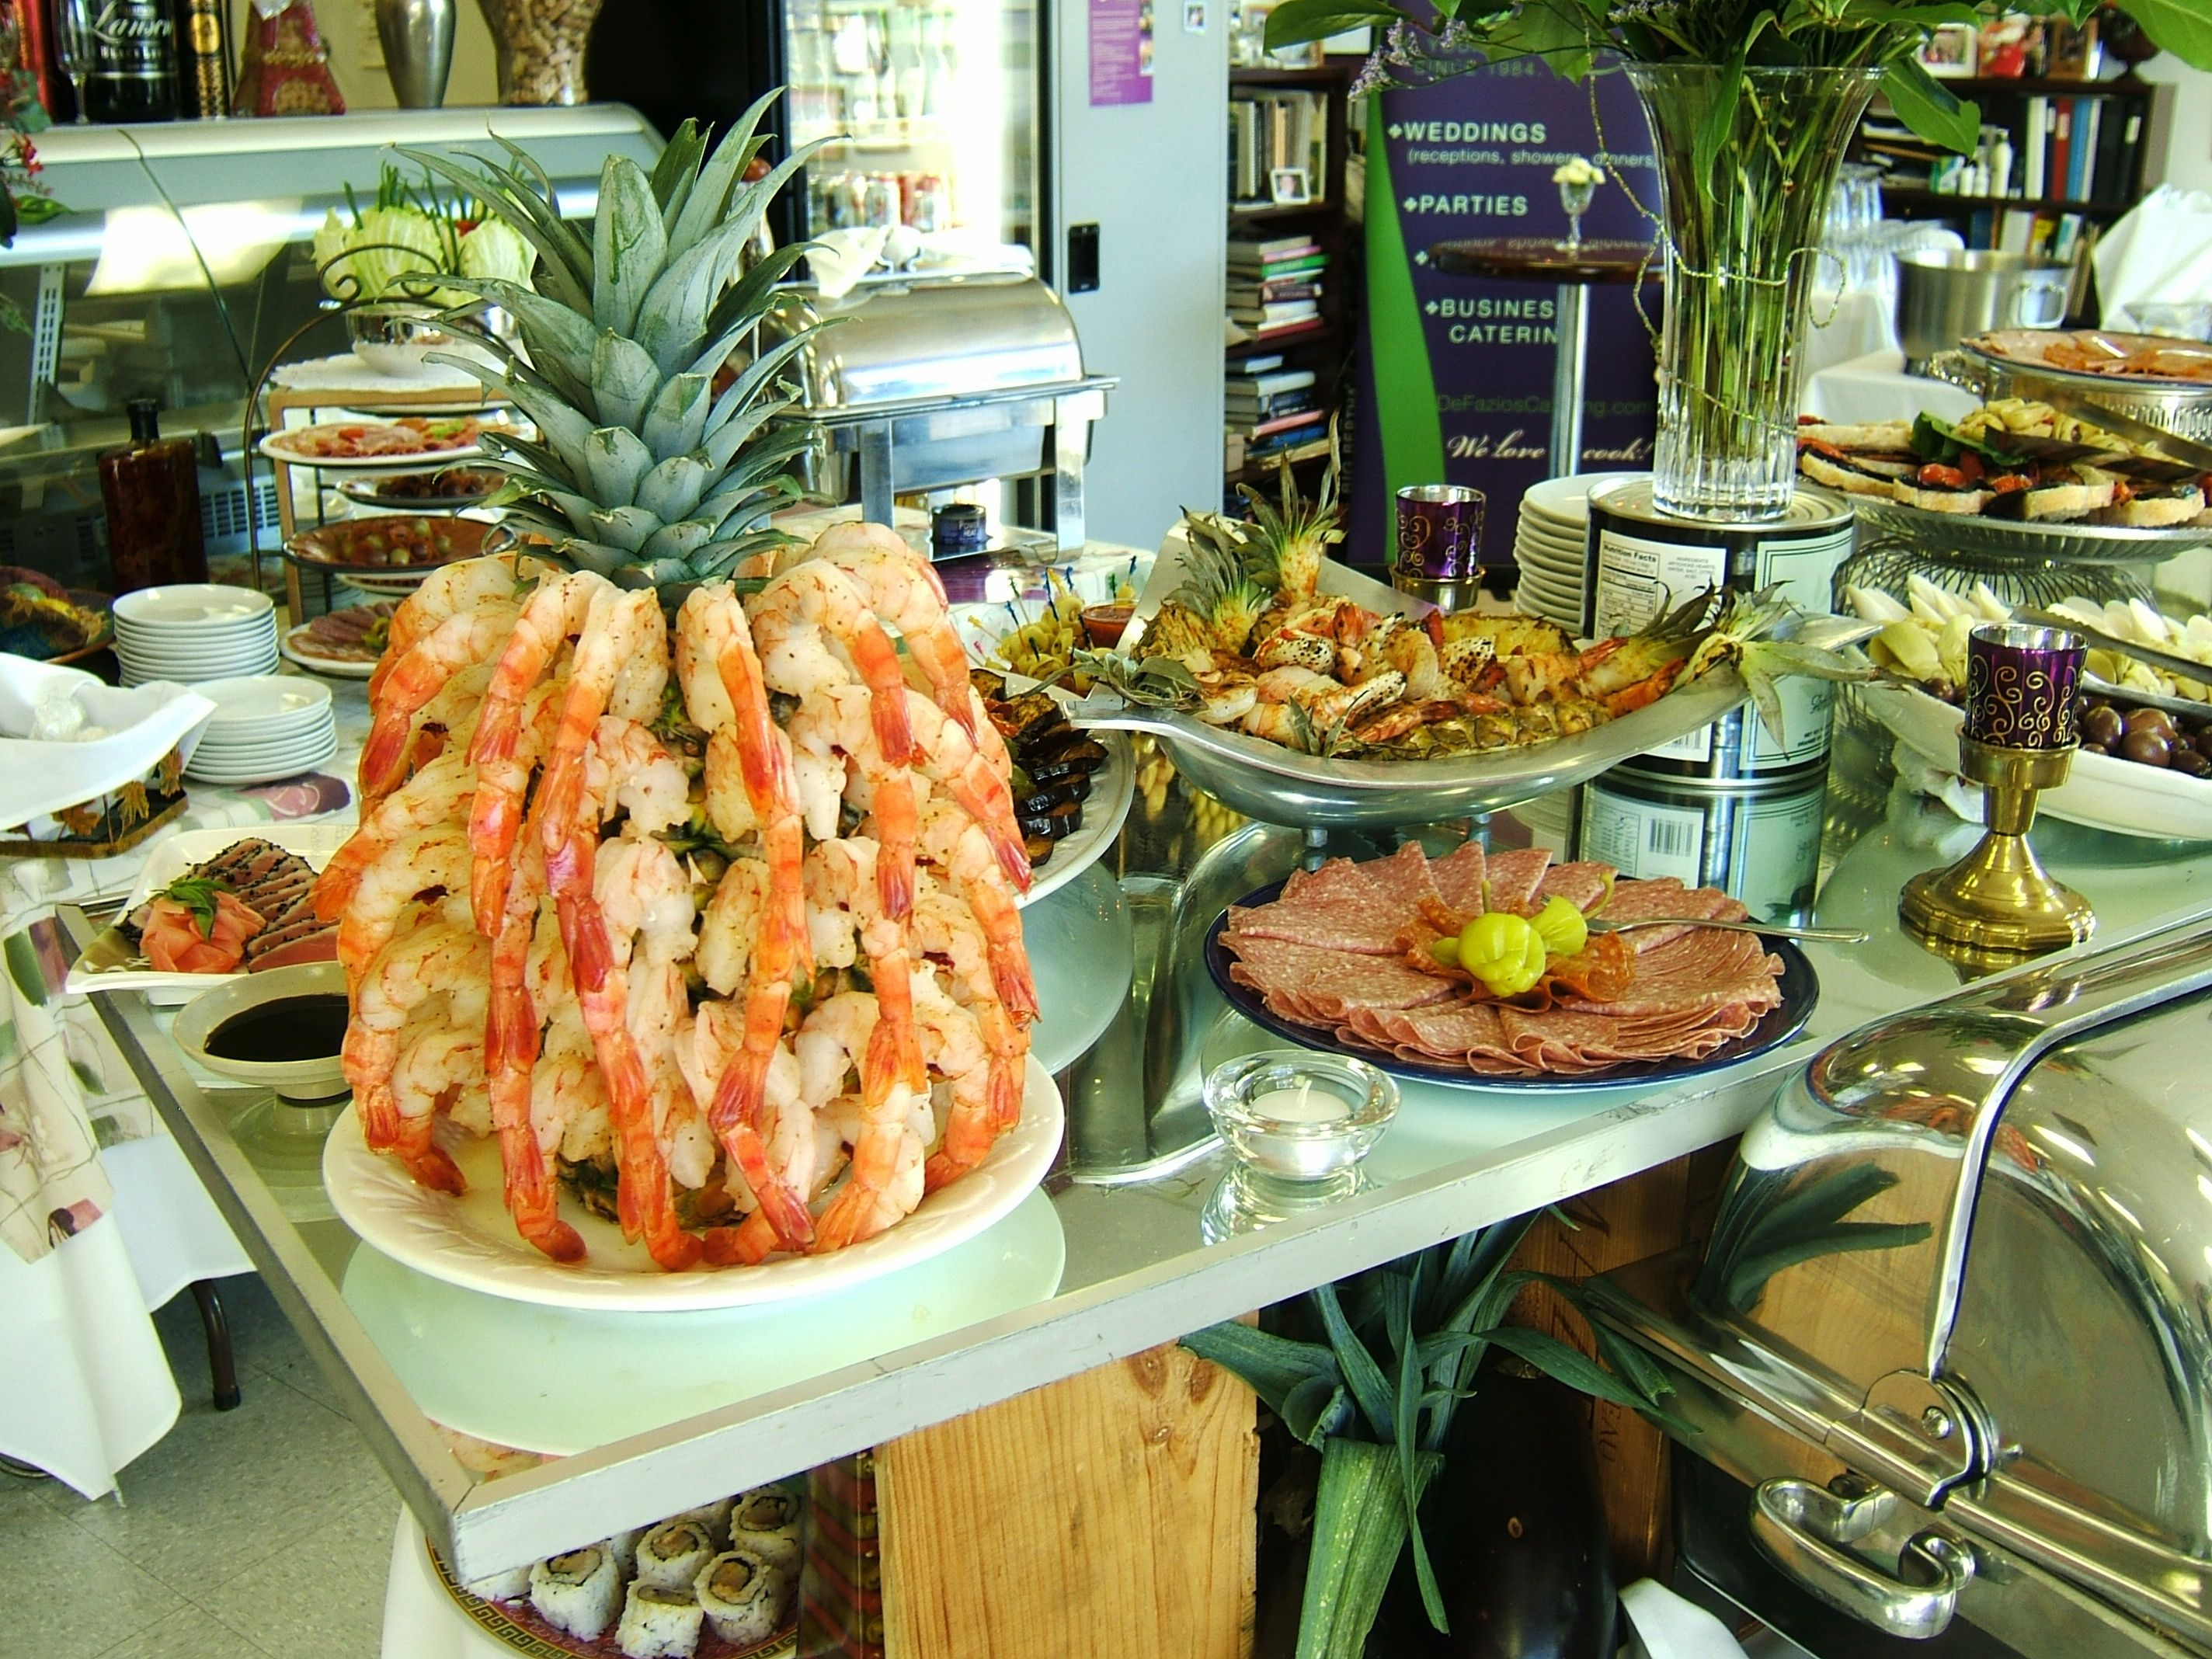 Shrimp Cocktail Display Catering Food Displays Food Displays